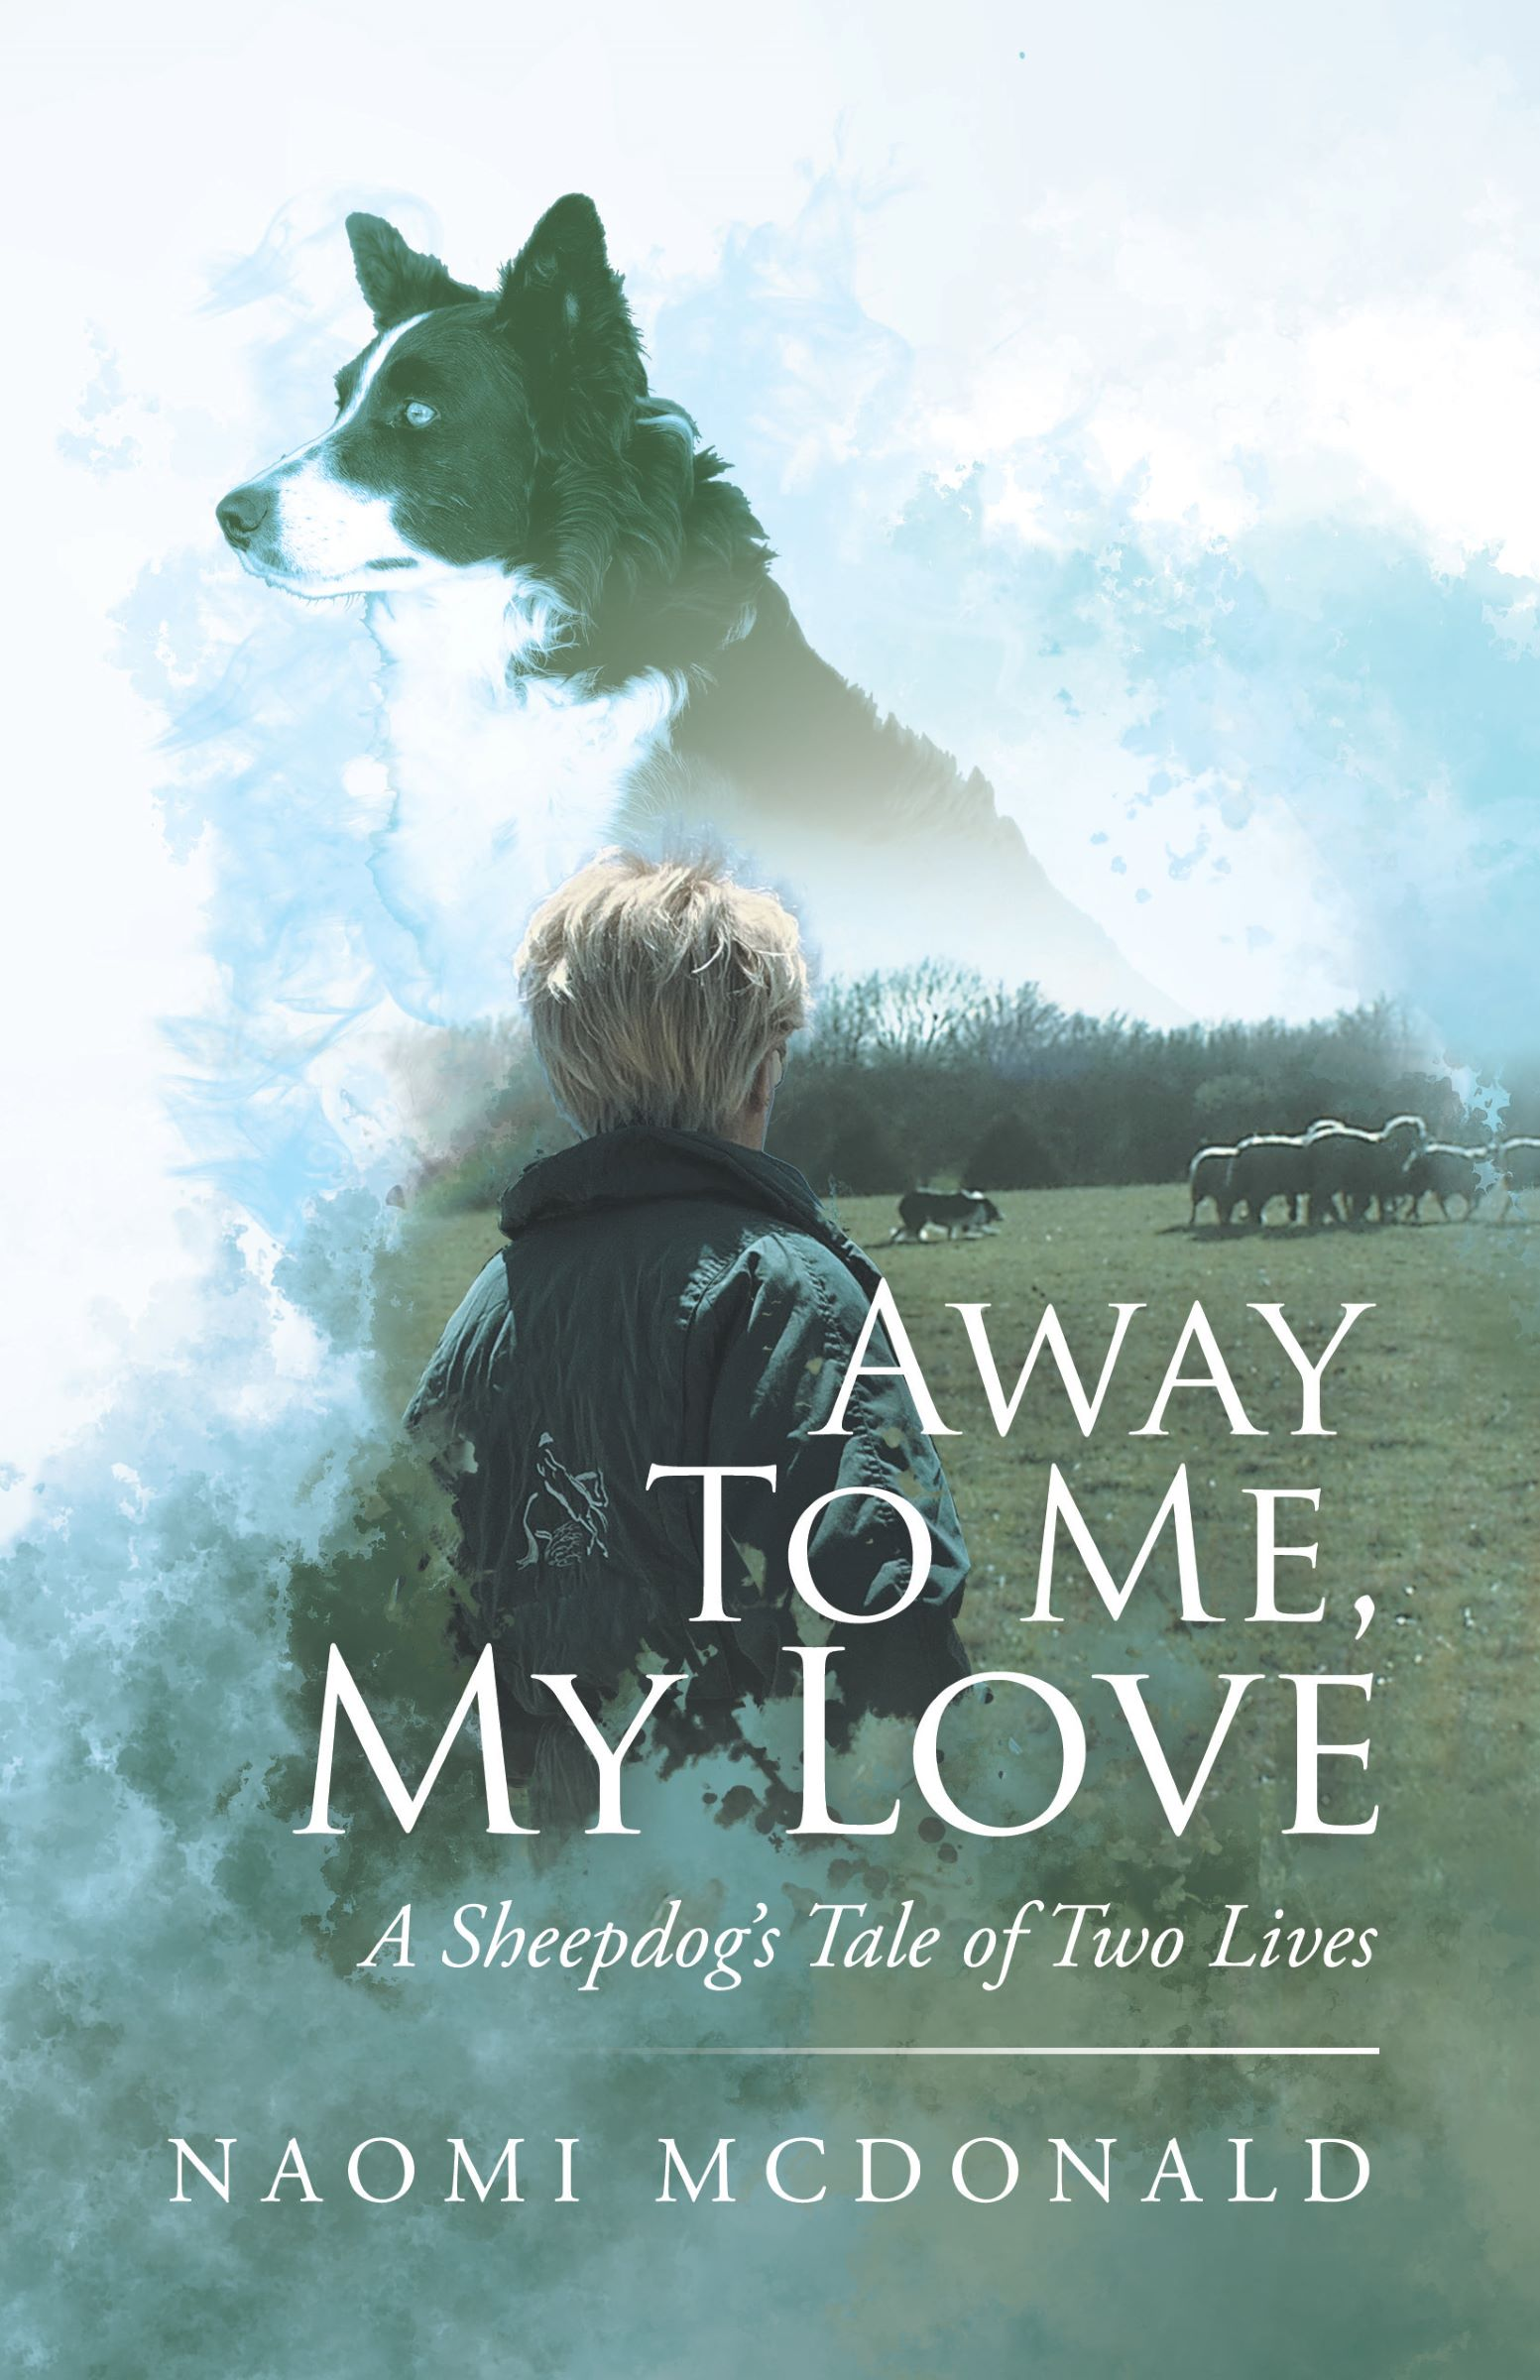 Away to Me, My Love: A Sheepdog's Tale of Two Lives